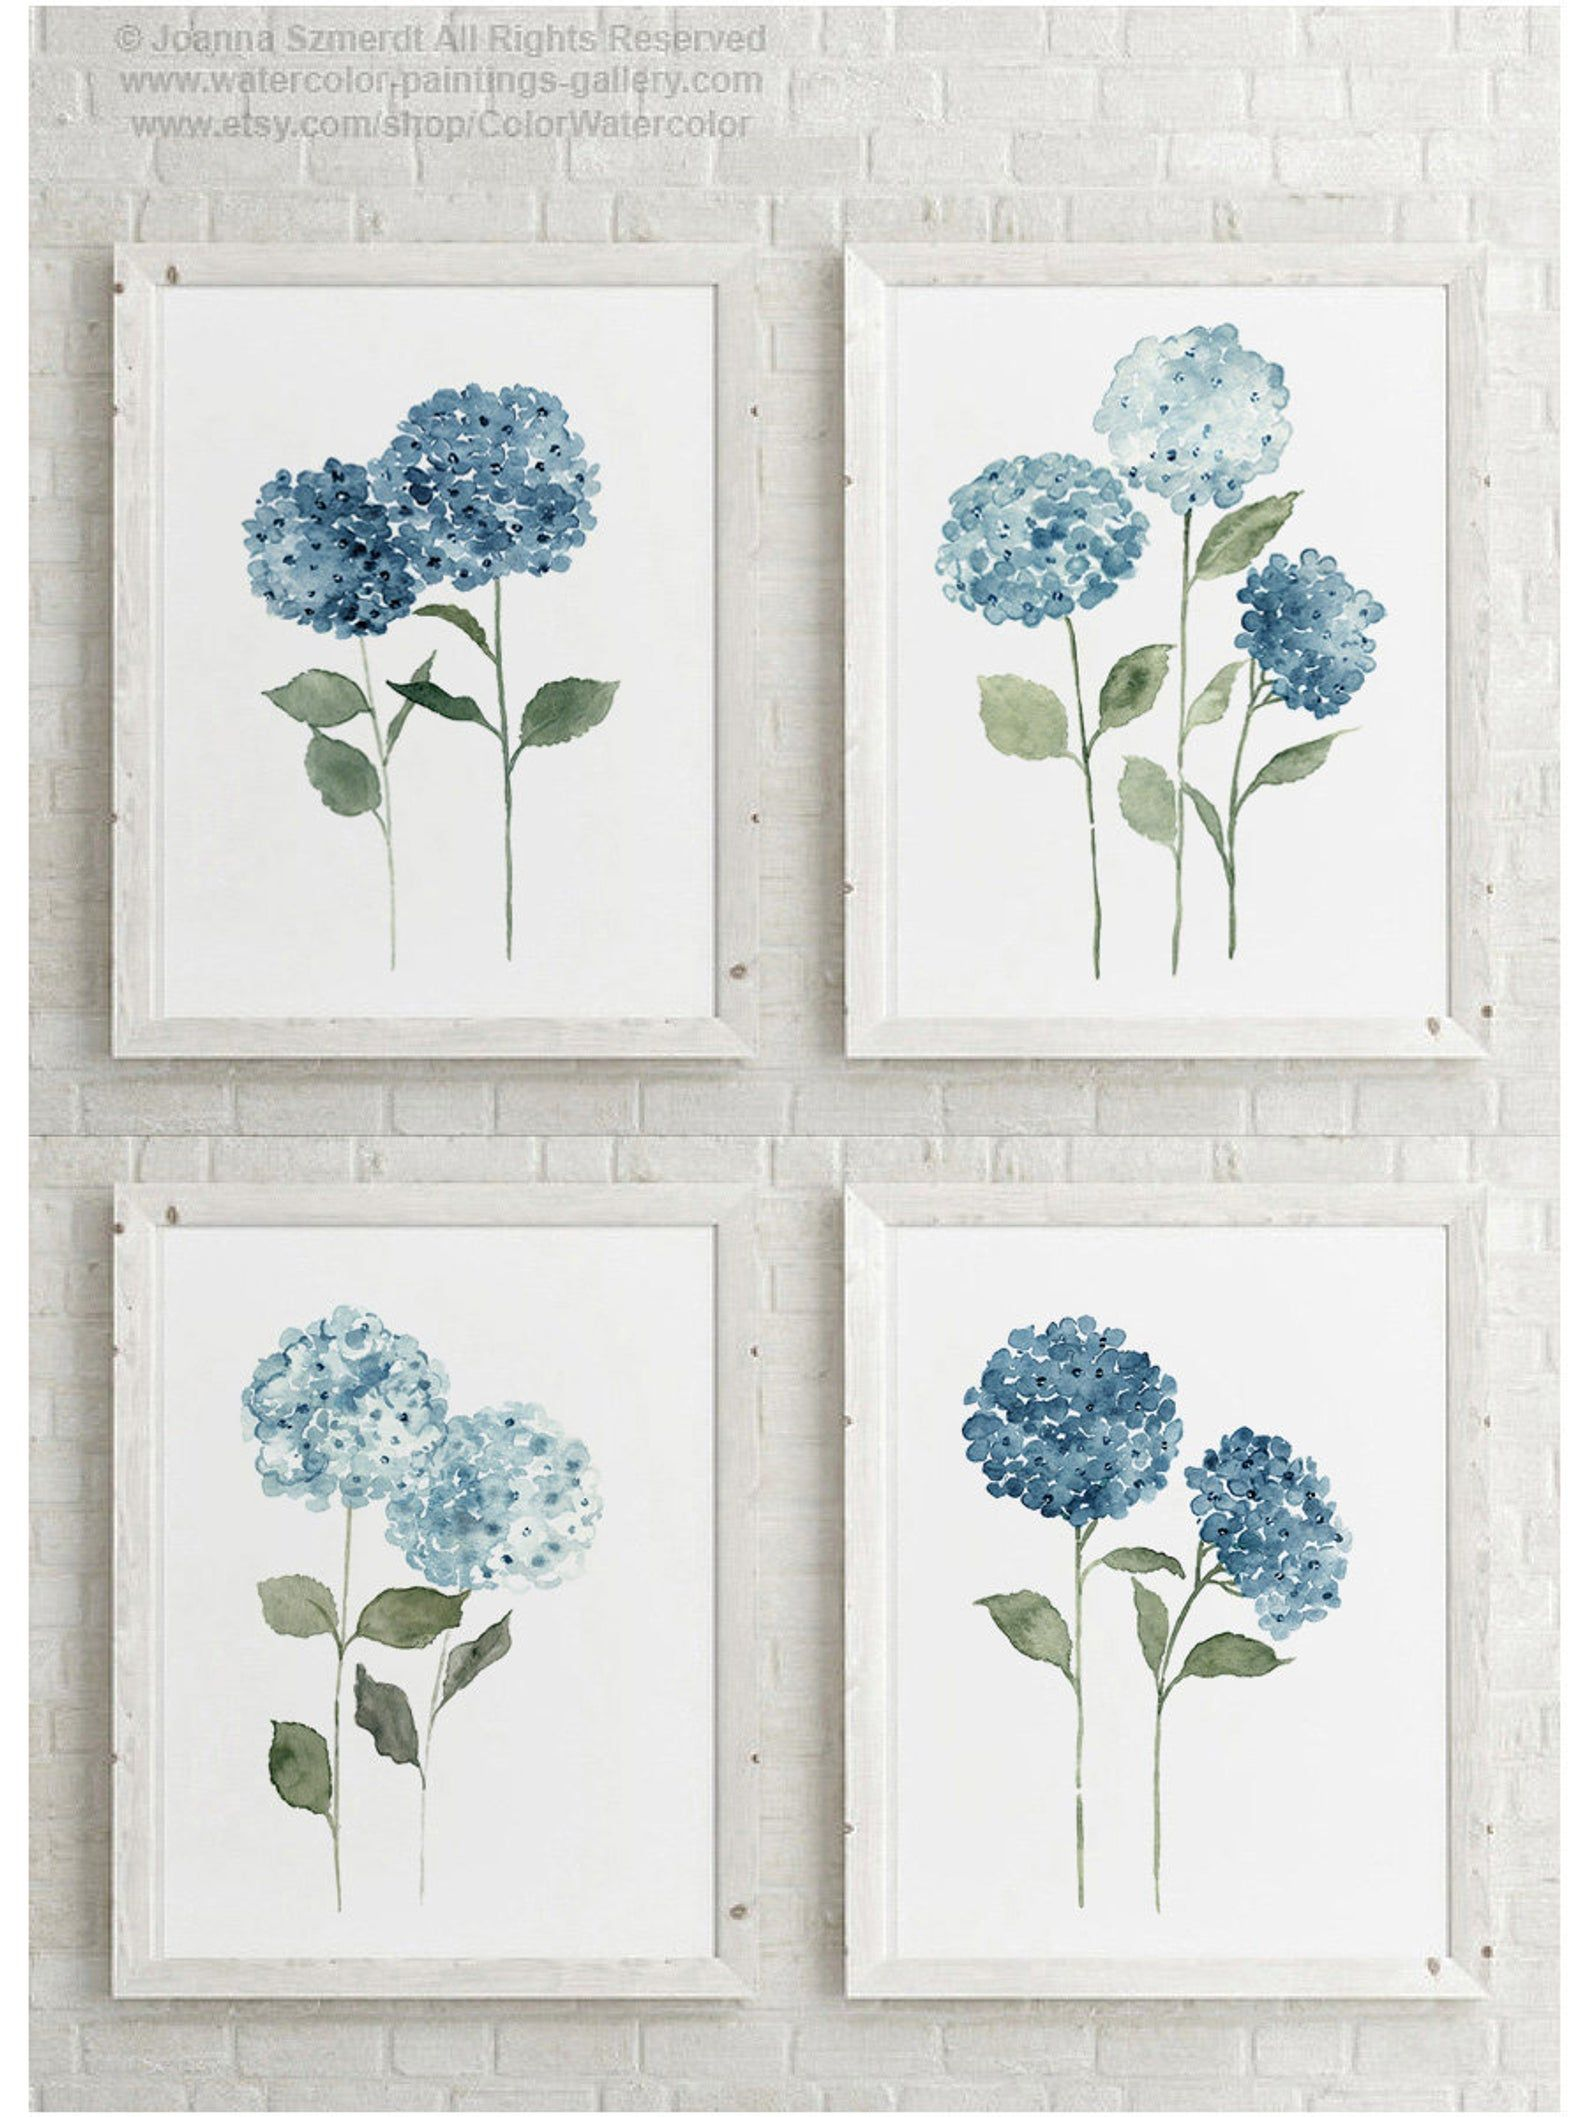 Blue Hydrangea Flowers Set 4 Watercolour Drawings Colorful Botanical Motive Modern Bedroom Decoration Scandinavian Nature Style Home Art Hydrangeas Art Hydrangea Painting Watercolour Drawings